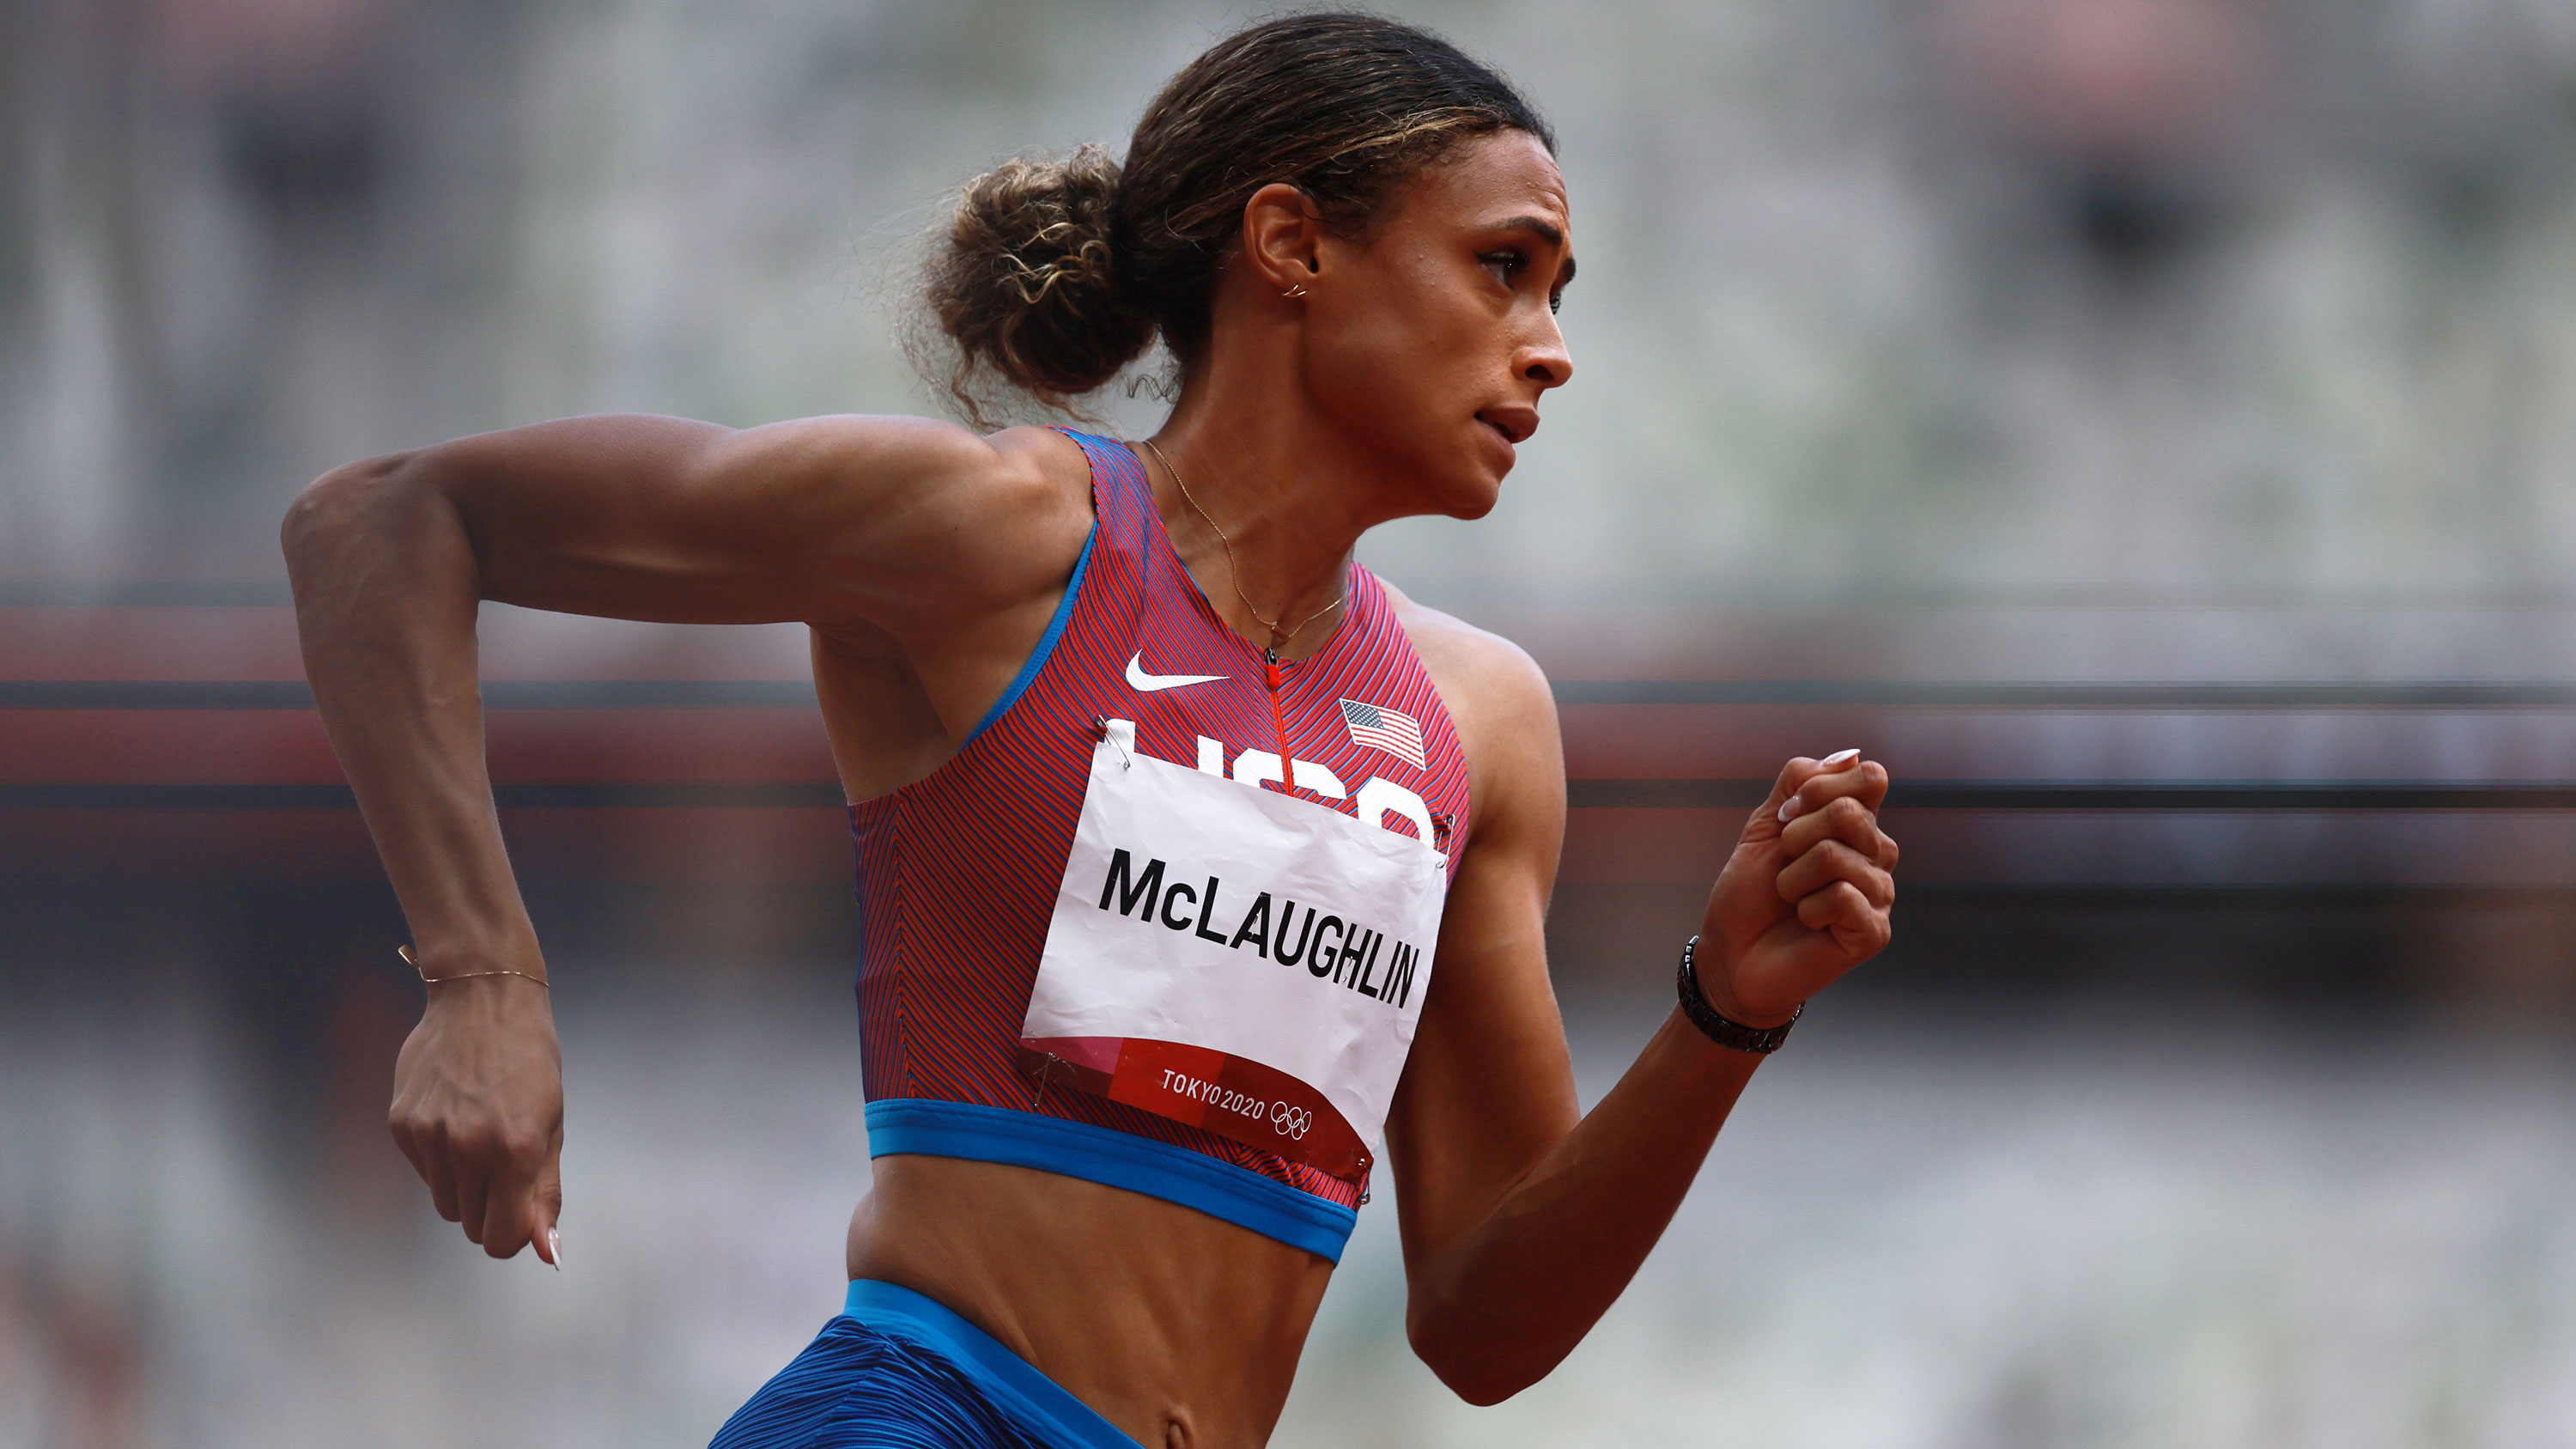 American Sydney McLaughlin competes in the 400 meters hurdles final on August 4.